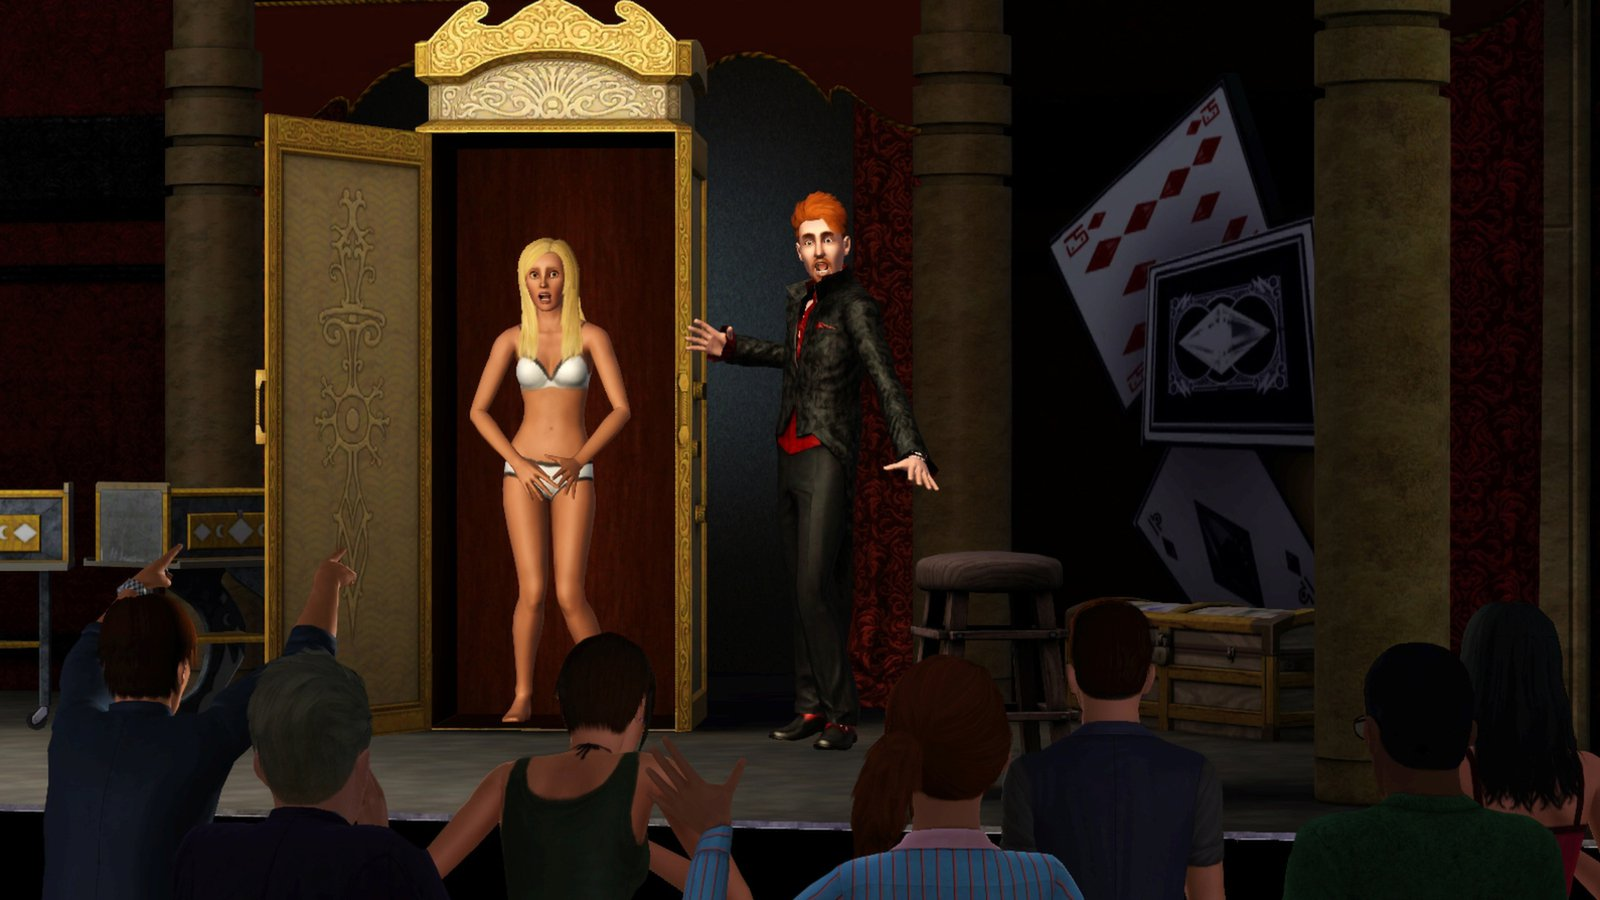 The Sims 3 Showtime 7